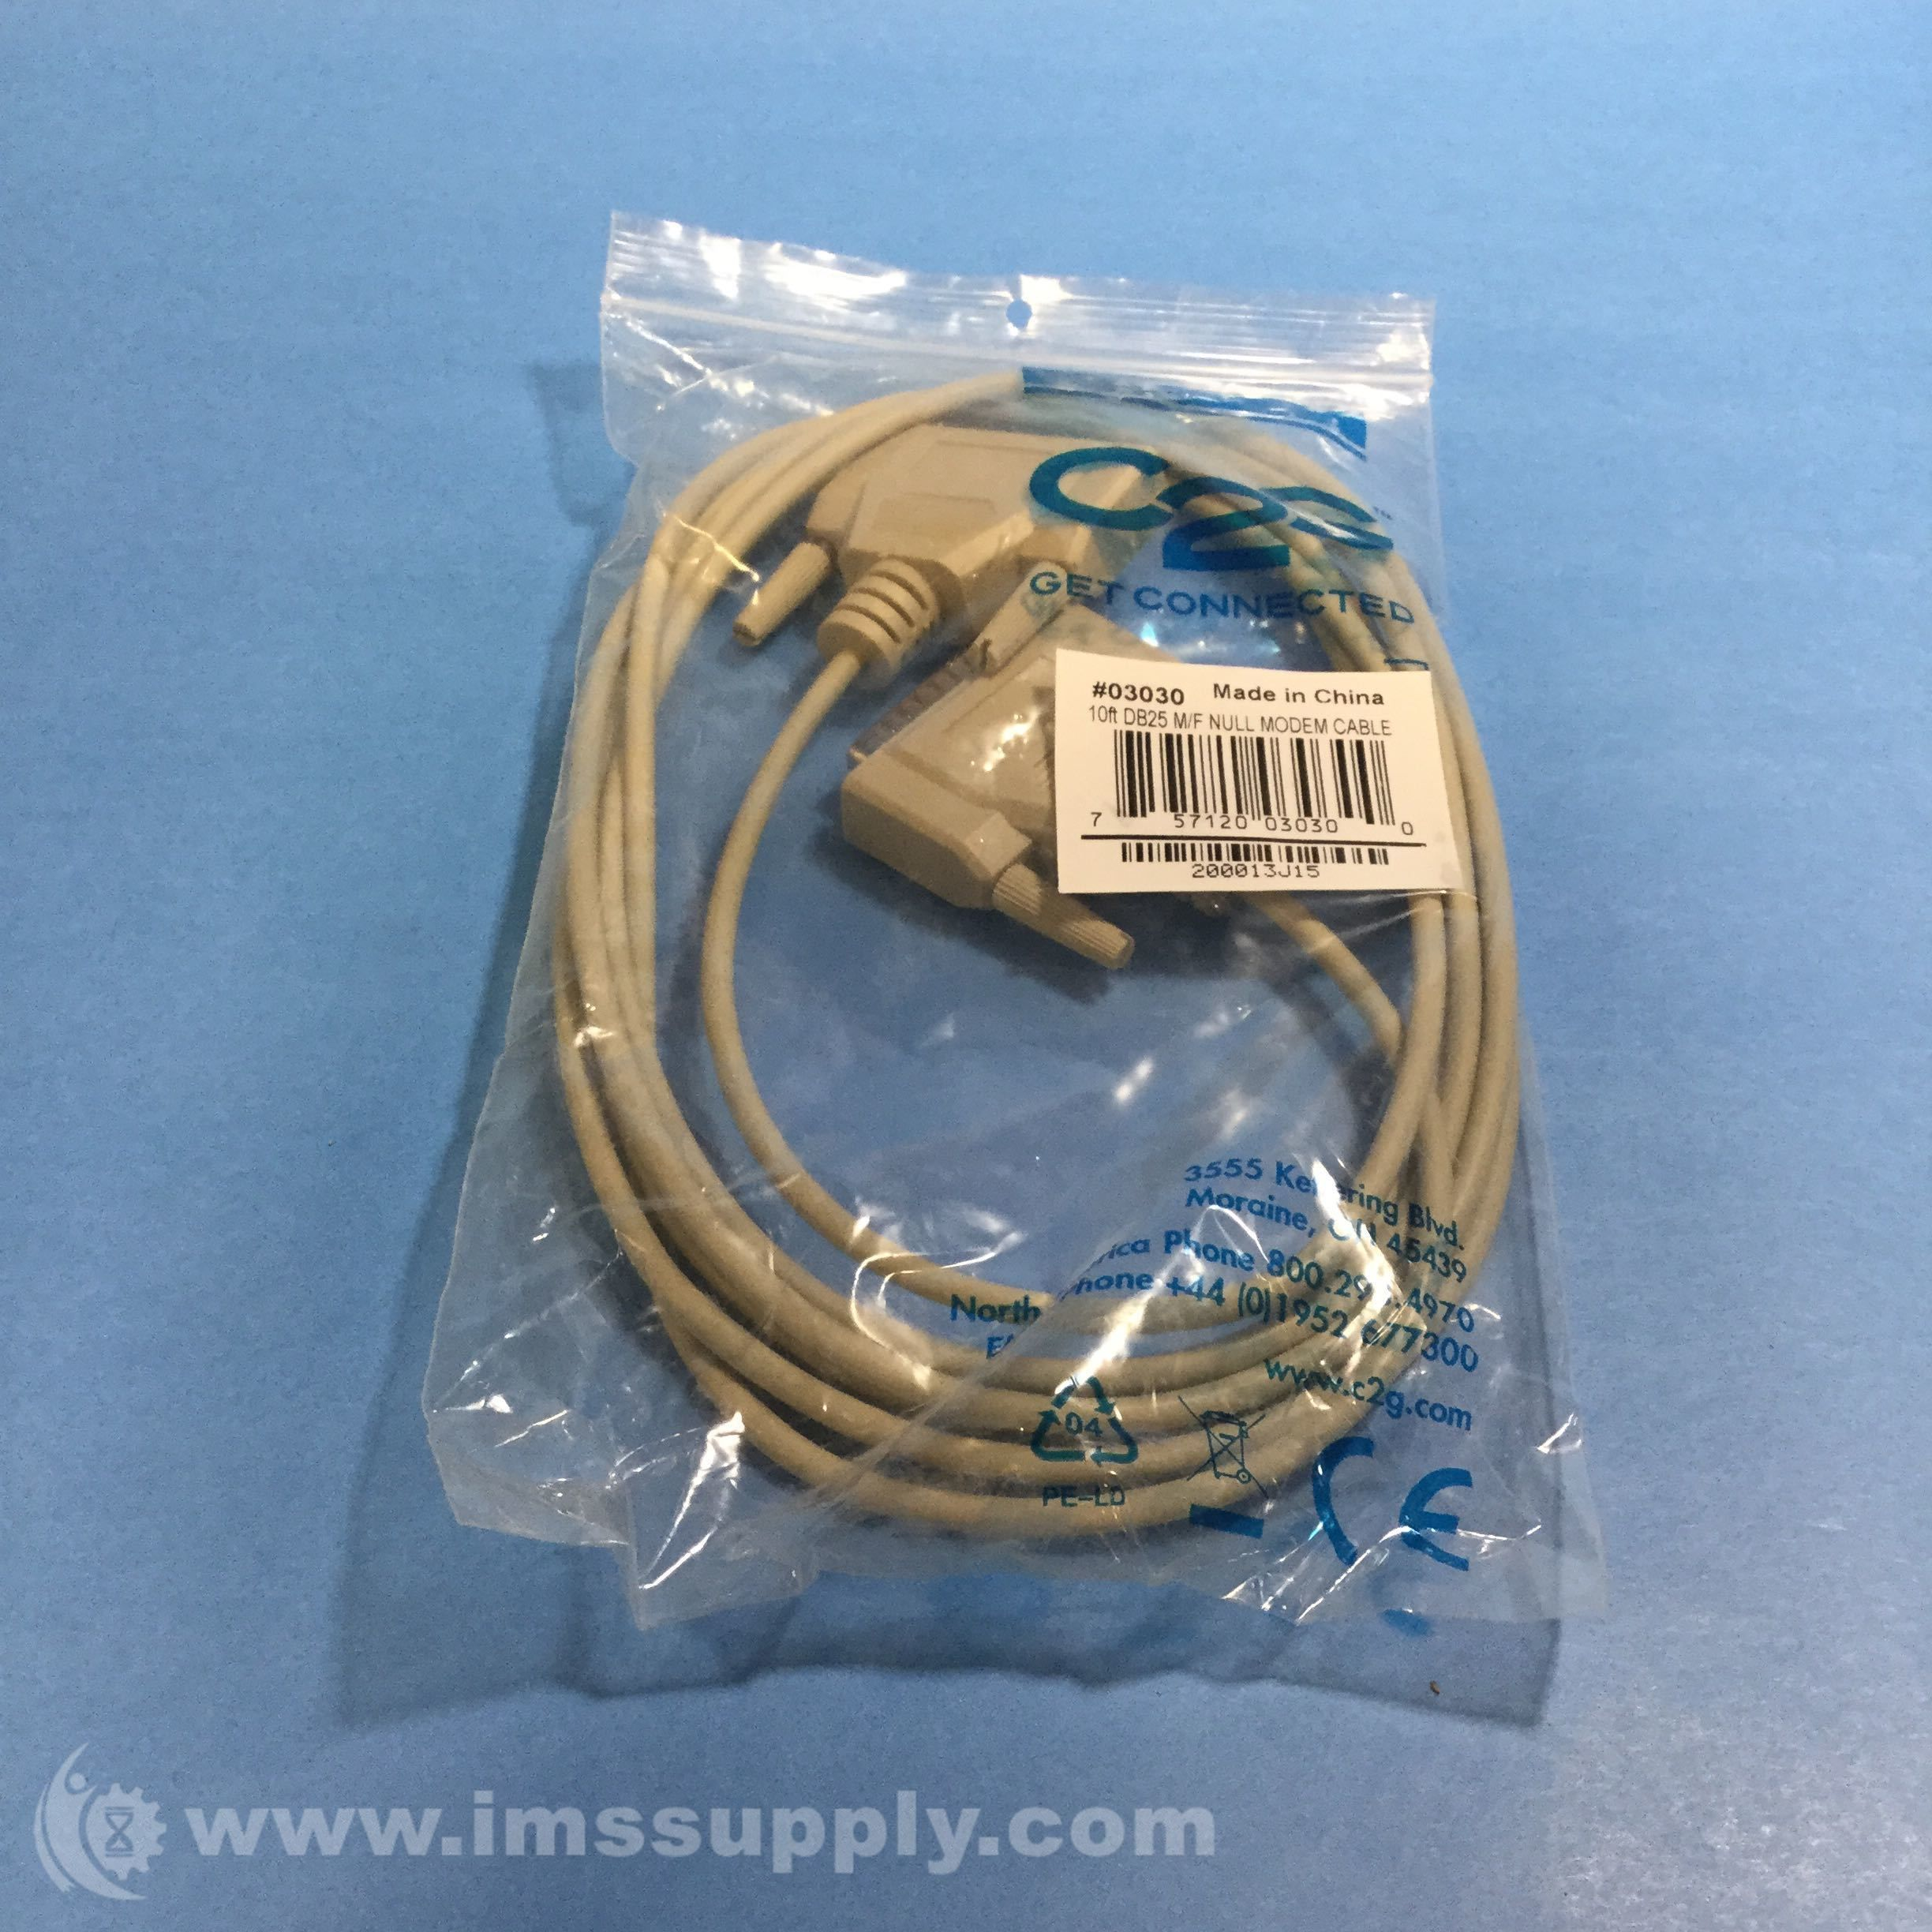 STARTECH SCNM10MF CROSS WIRED SERIAL/NULL MODEM CABLE | Great Deals ...